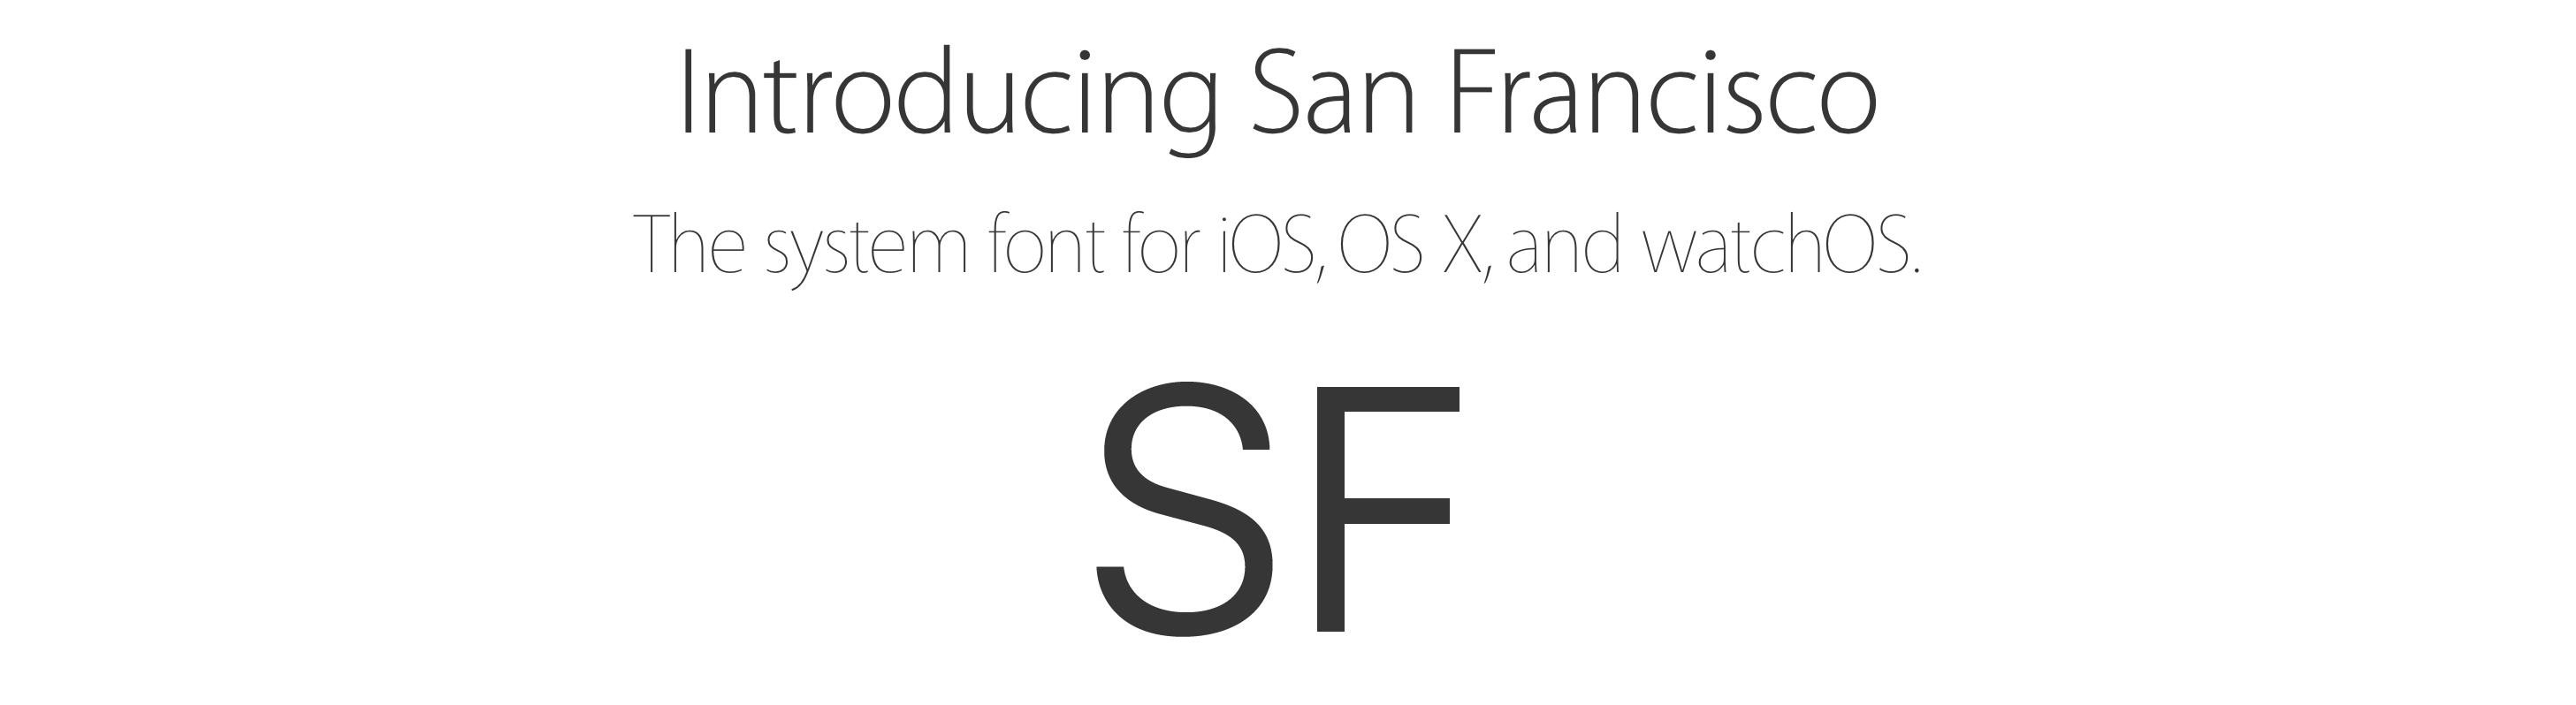 San Francisco display vs text and compact vs normal